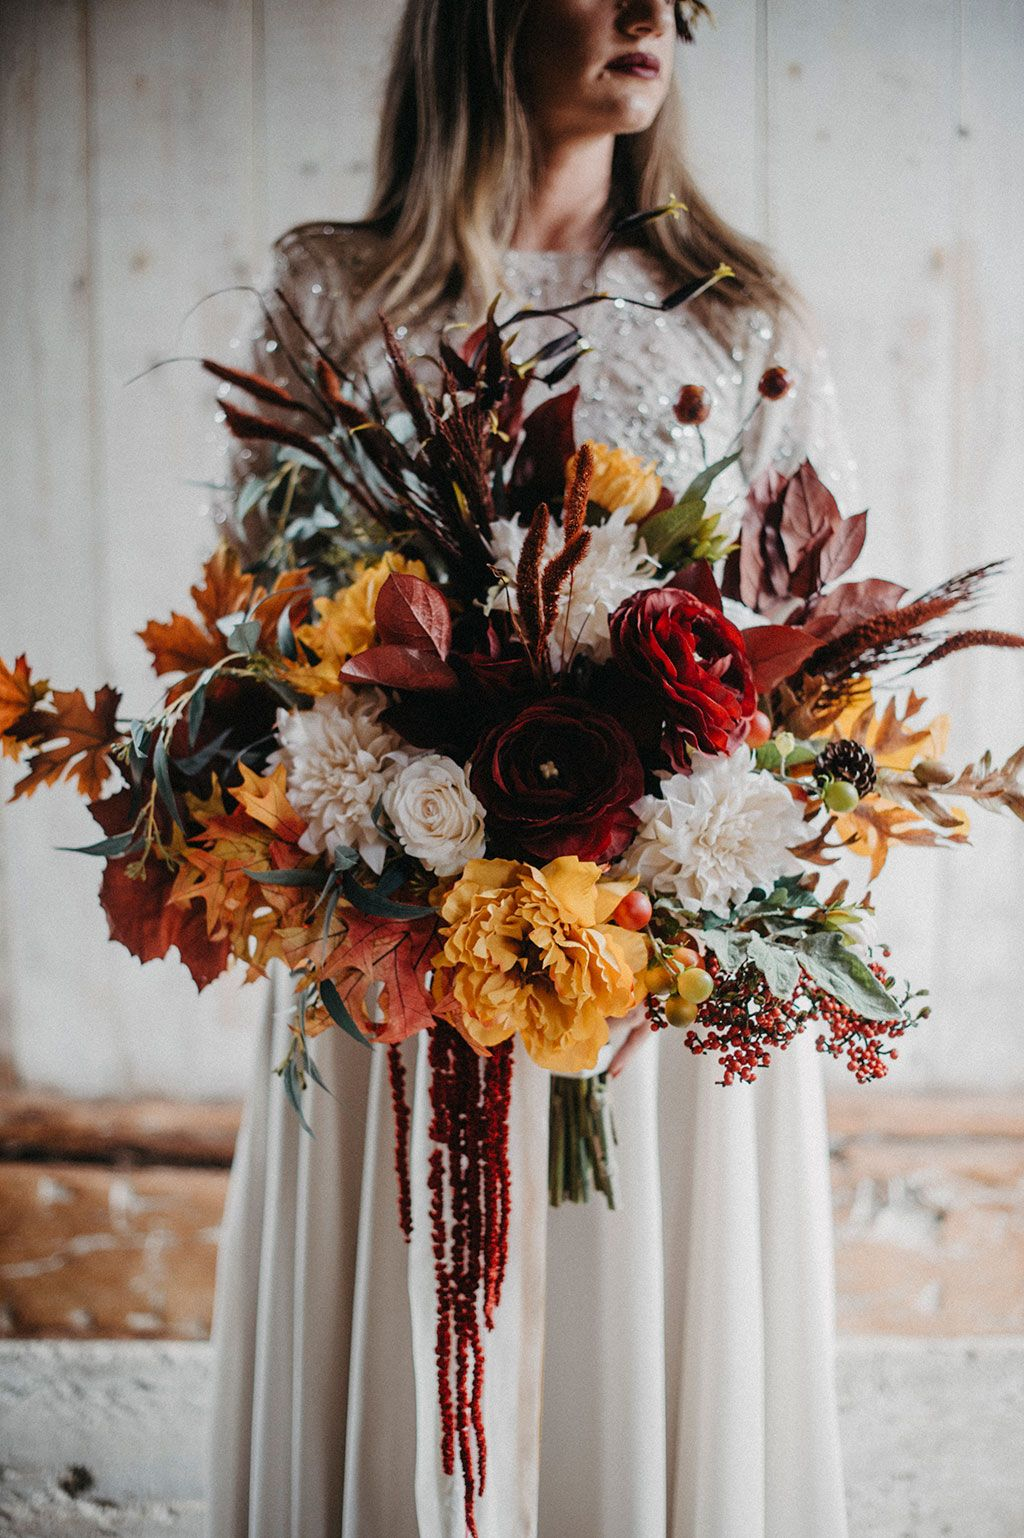 Fall wedding with artificial flowers and dried flowers